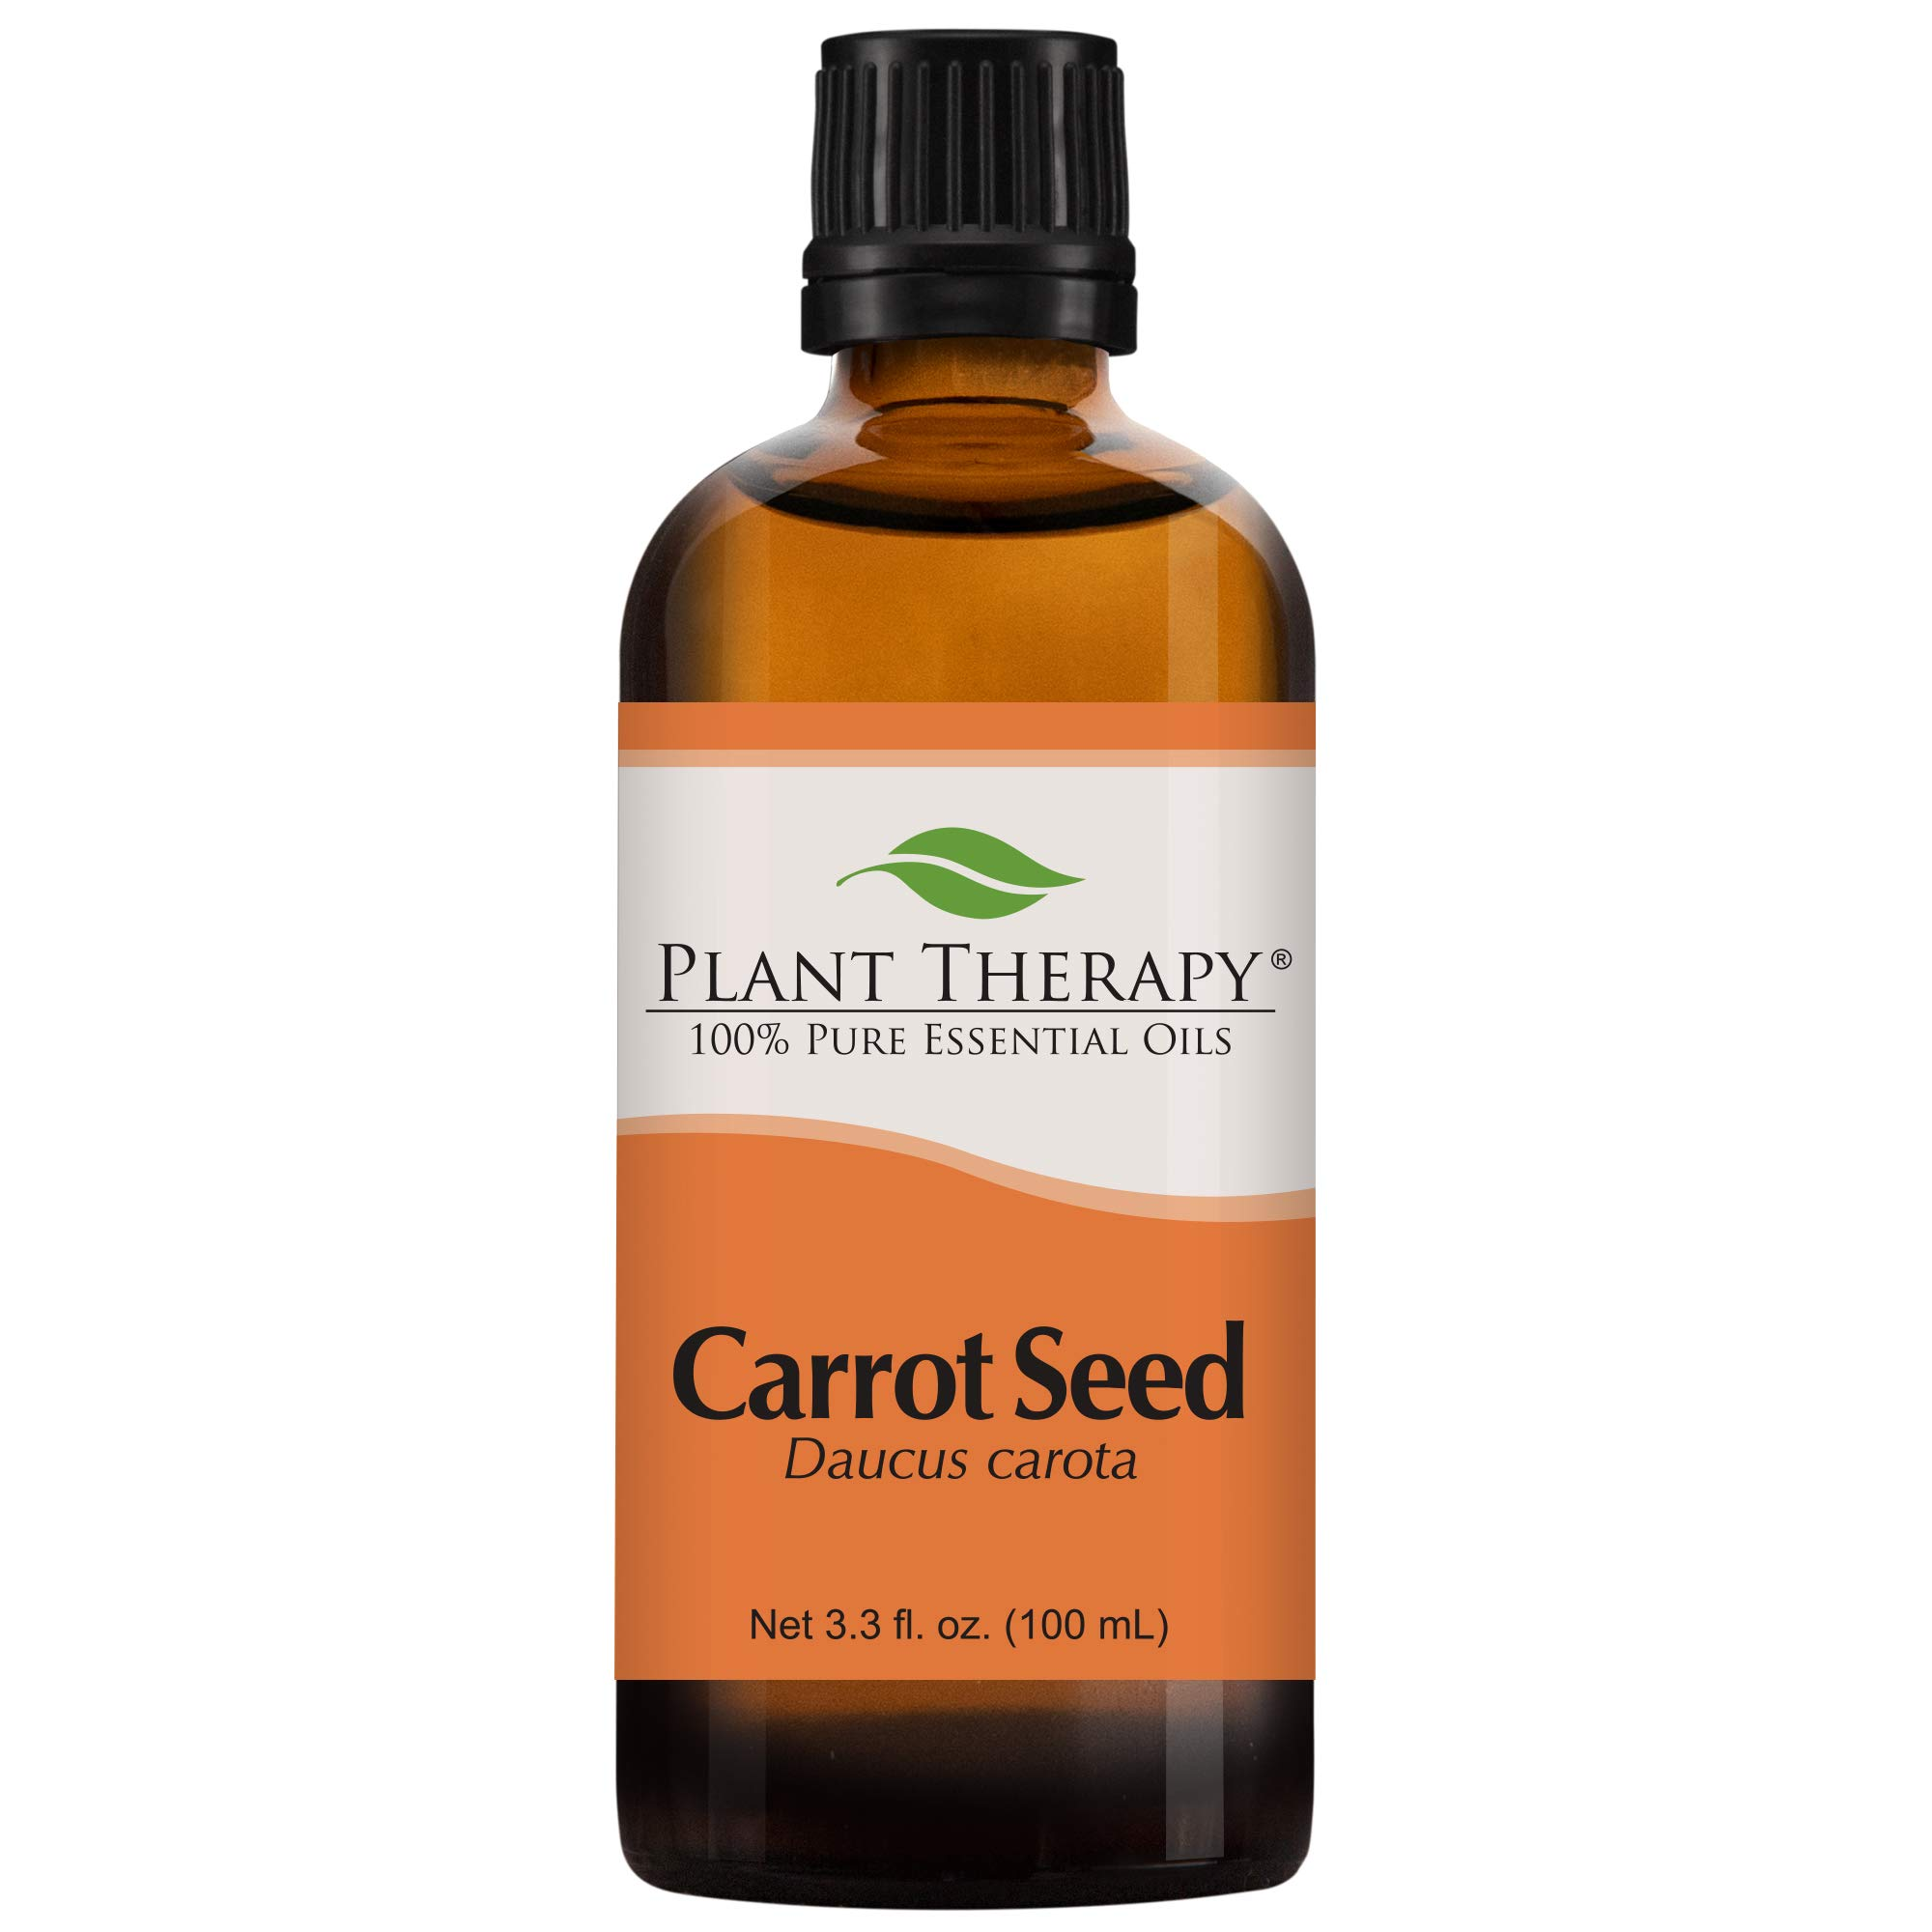 Plant Therapy Carrot Seed Essential Oil 100% Pure, Undiluted, Natural Aromatherapy, Therapeutic Grade 100 mL (3.3 oz)